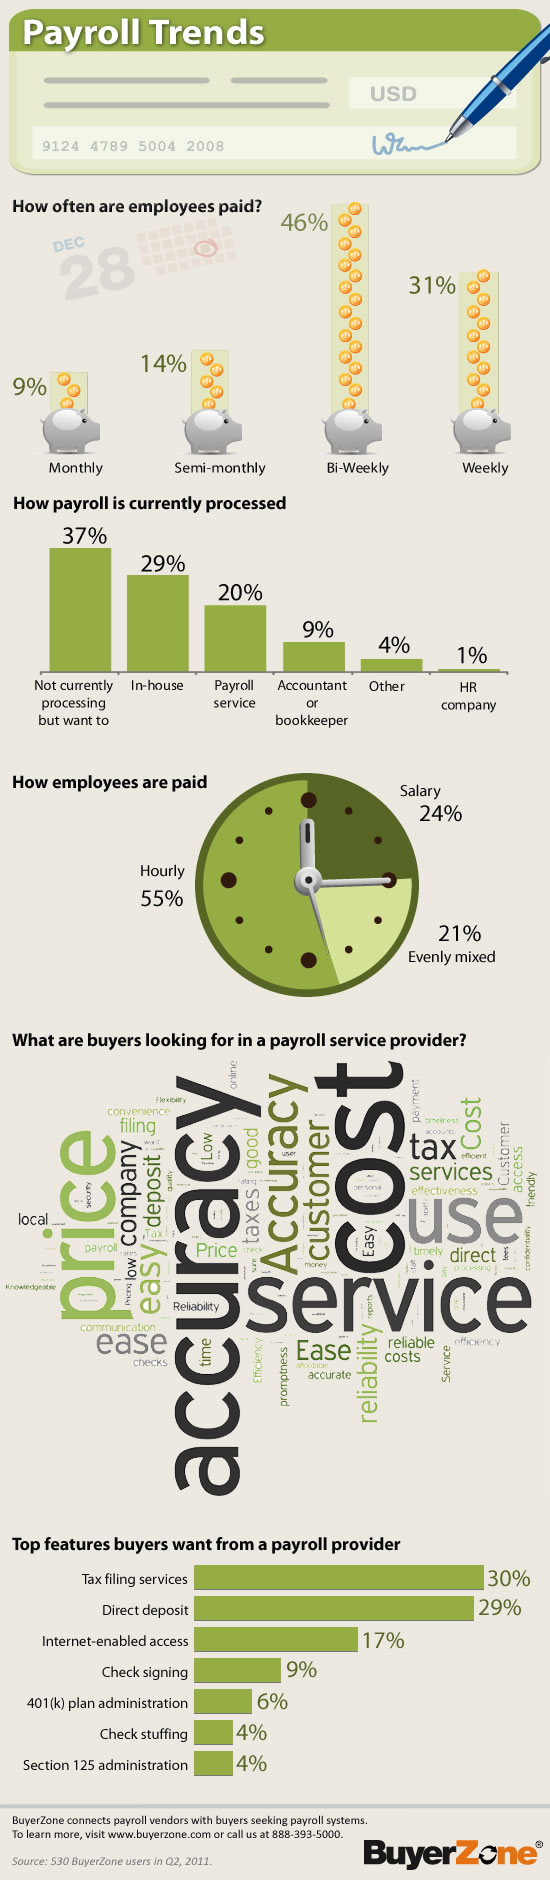 Payroll trends infographic